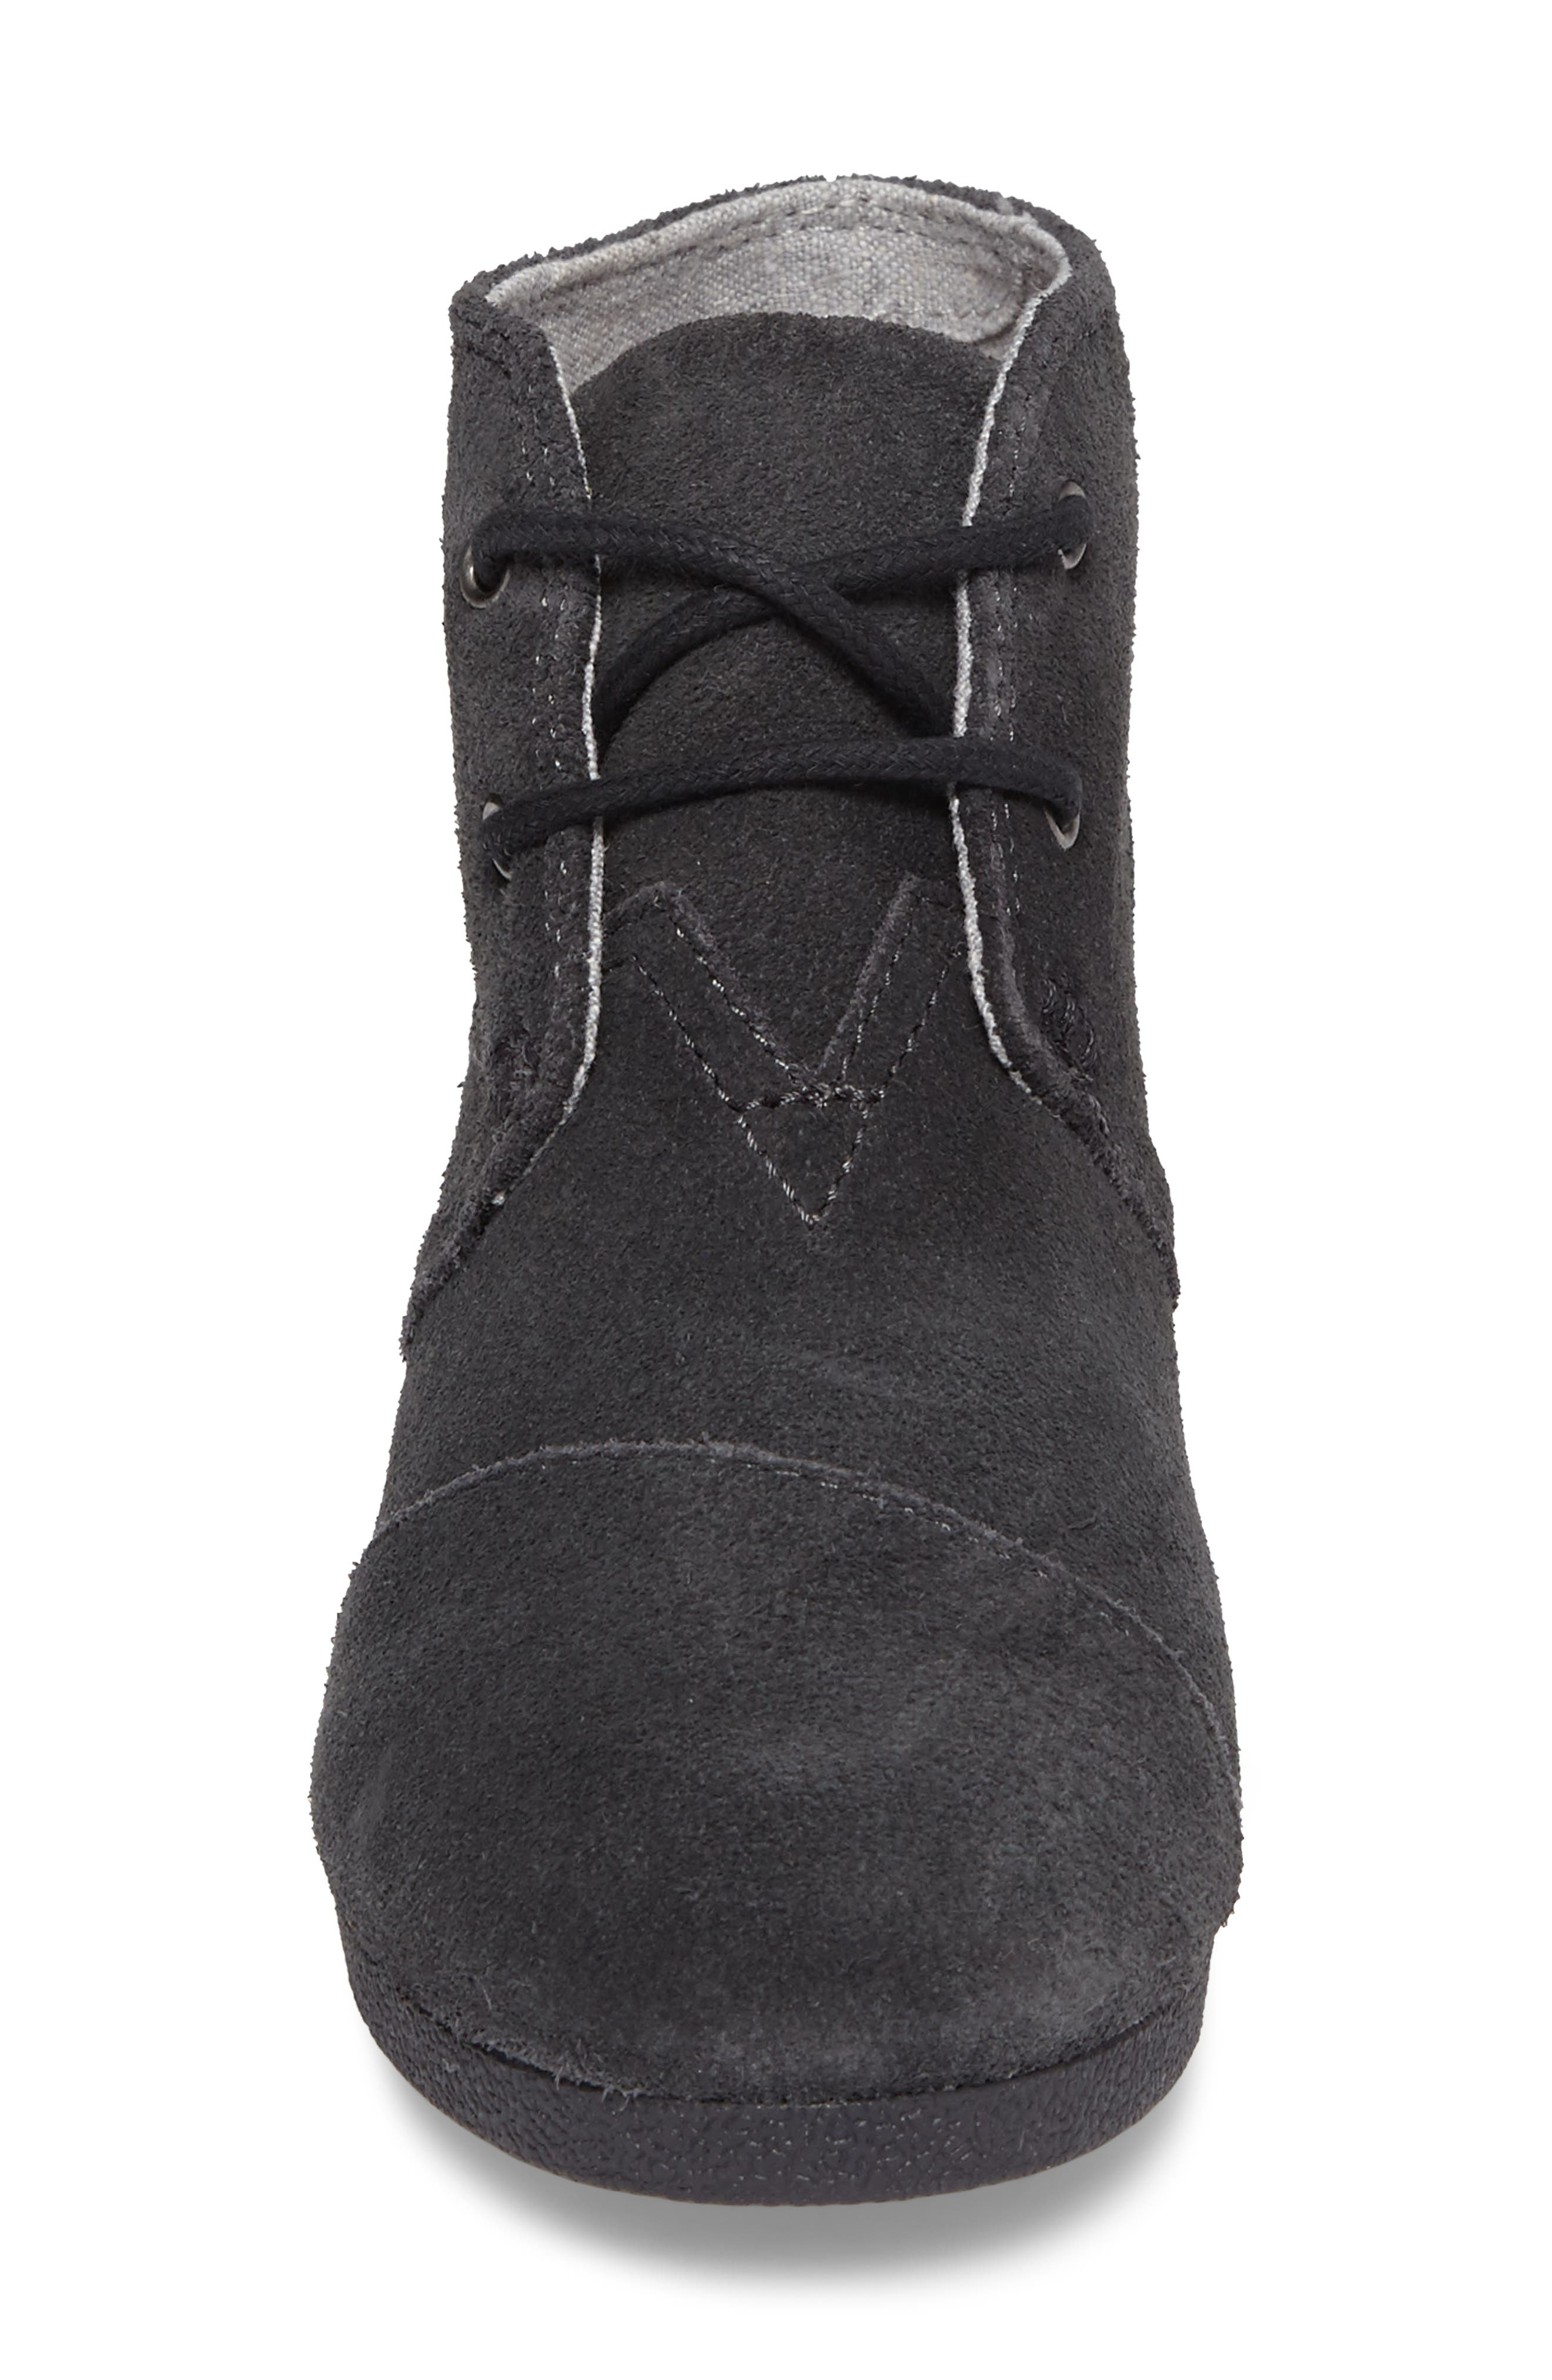 'Desert - Youth' Wedge Bootie,                             Alternate thumbnail 4, color,                             021